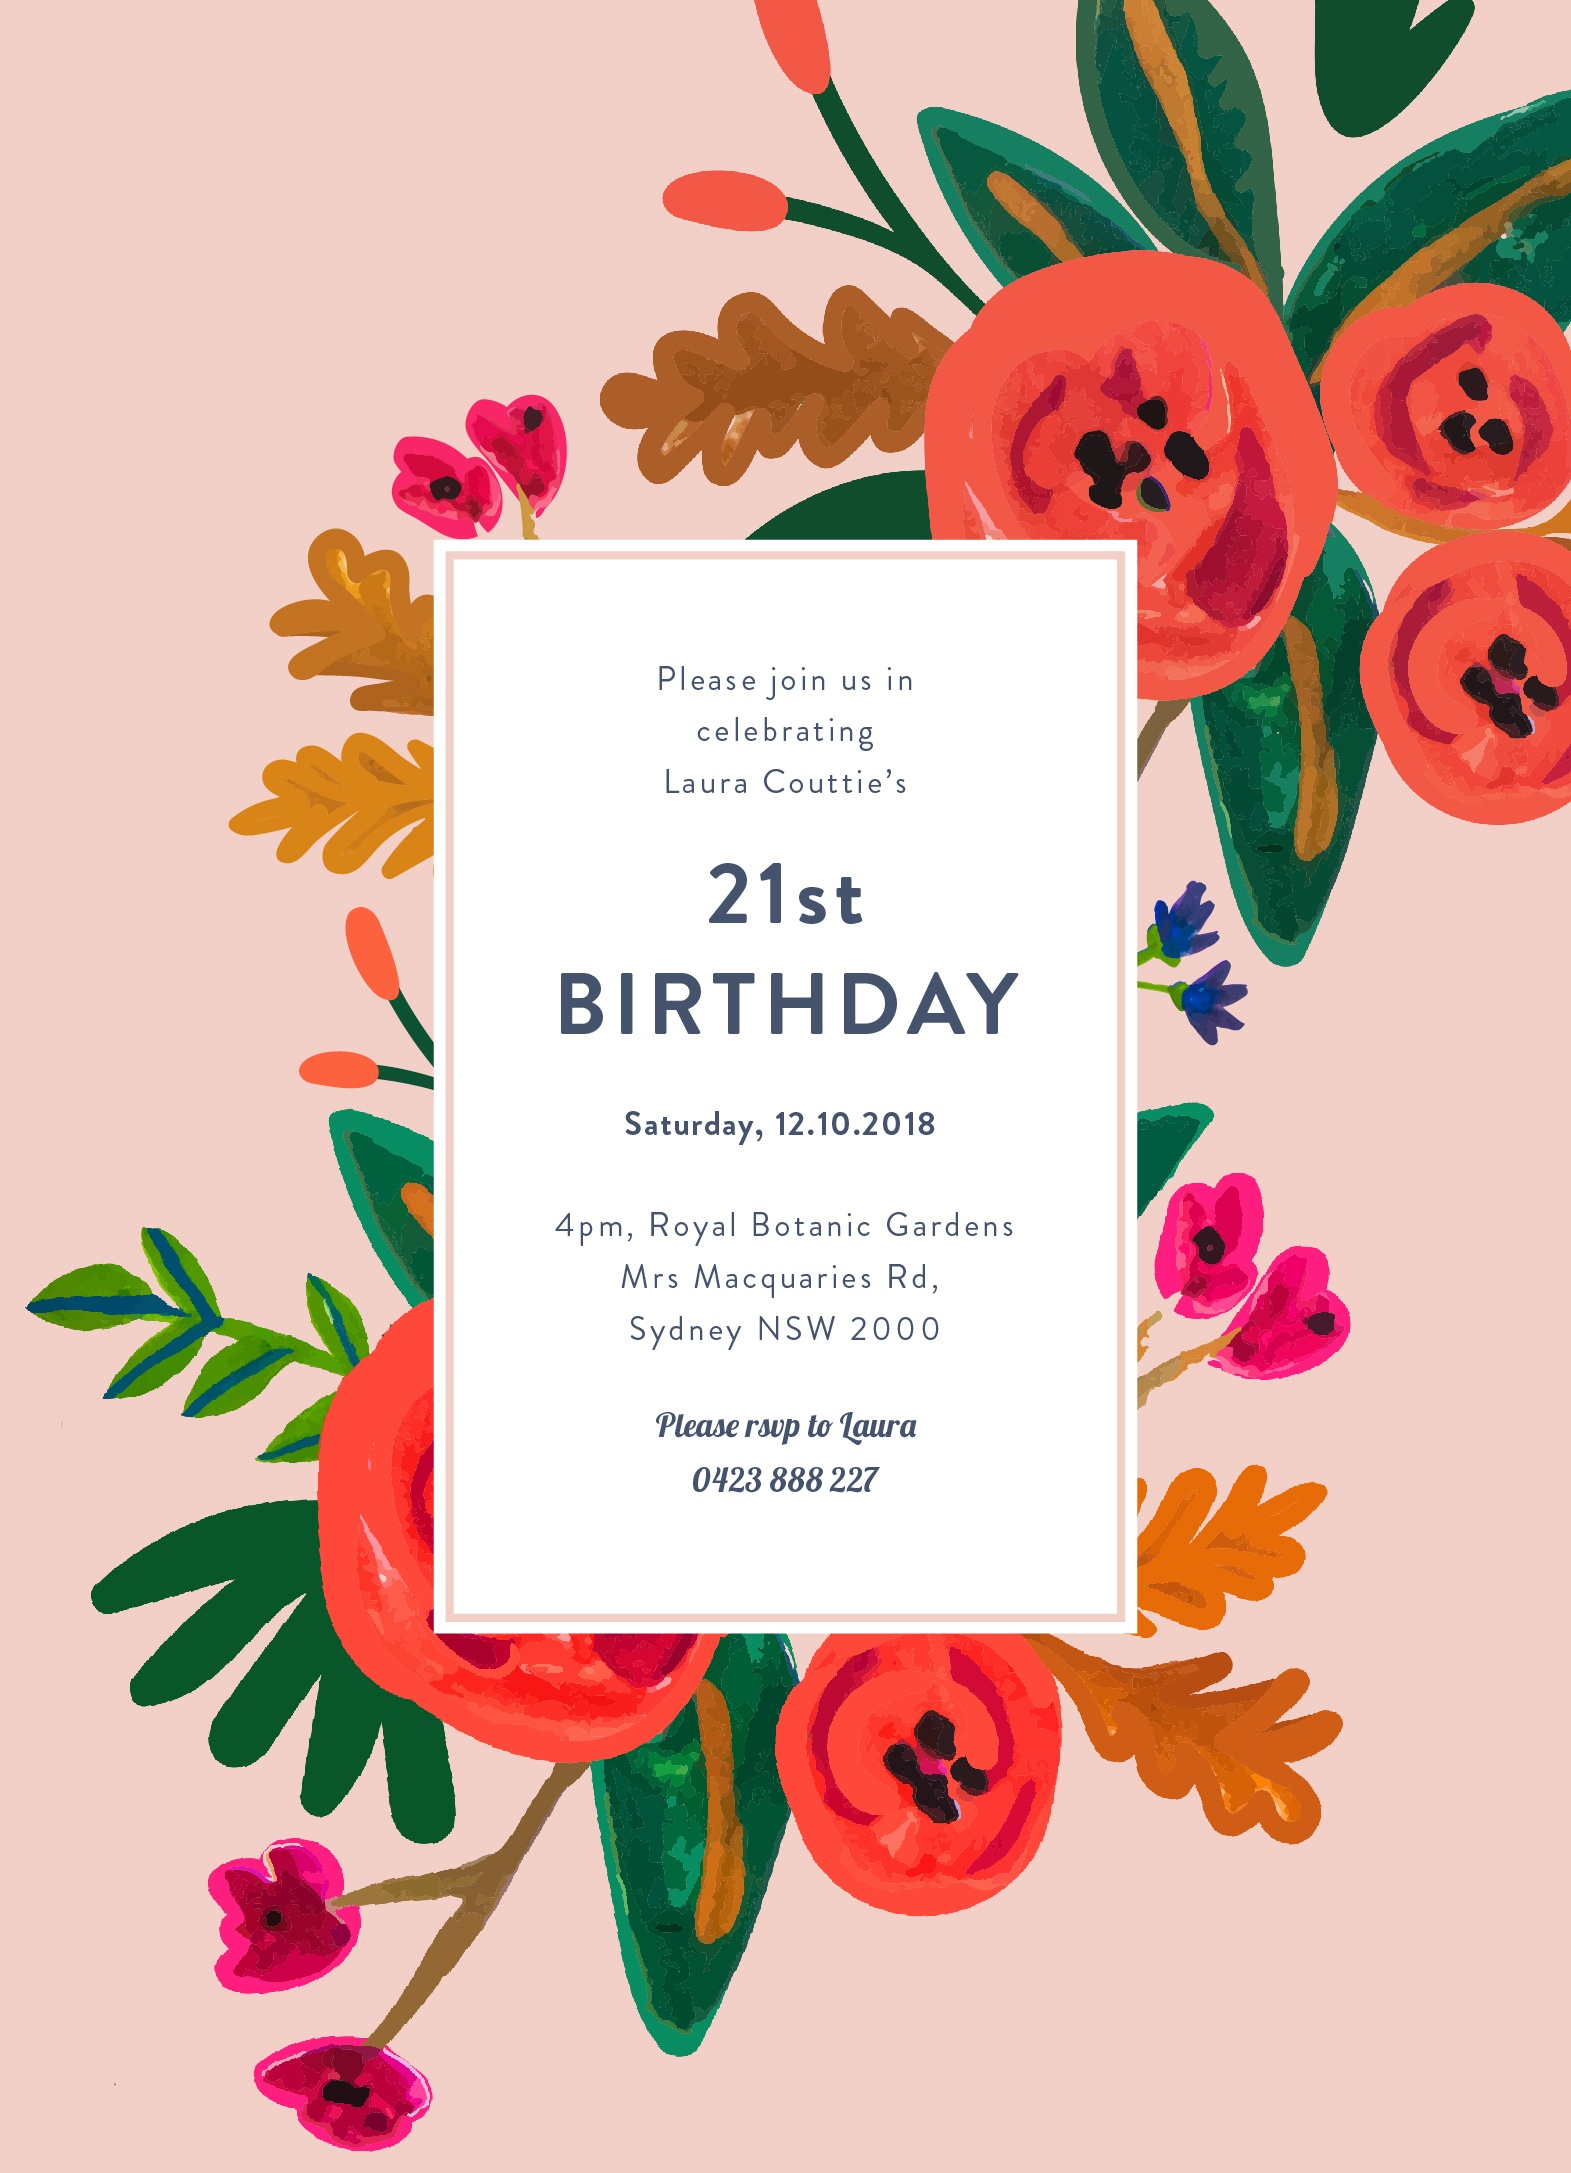 Birthday Party Invitations | Customize And Print Online - Paperlust - Make Your Own Birthday Party Invitations Free Printable